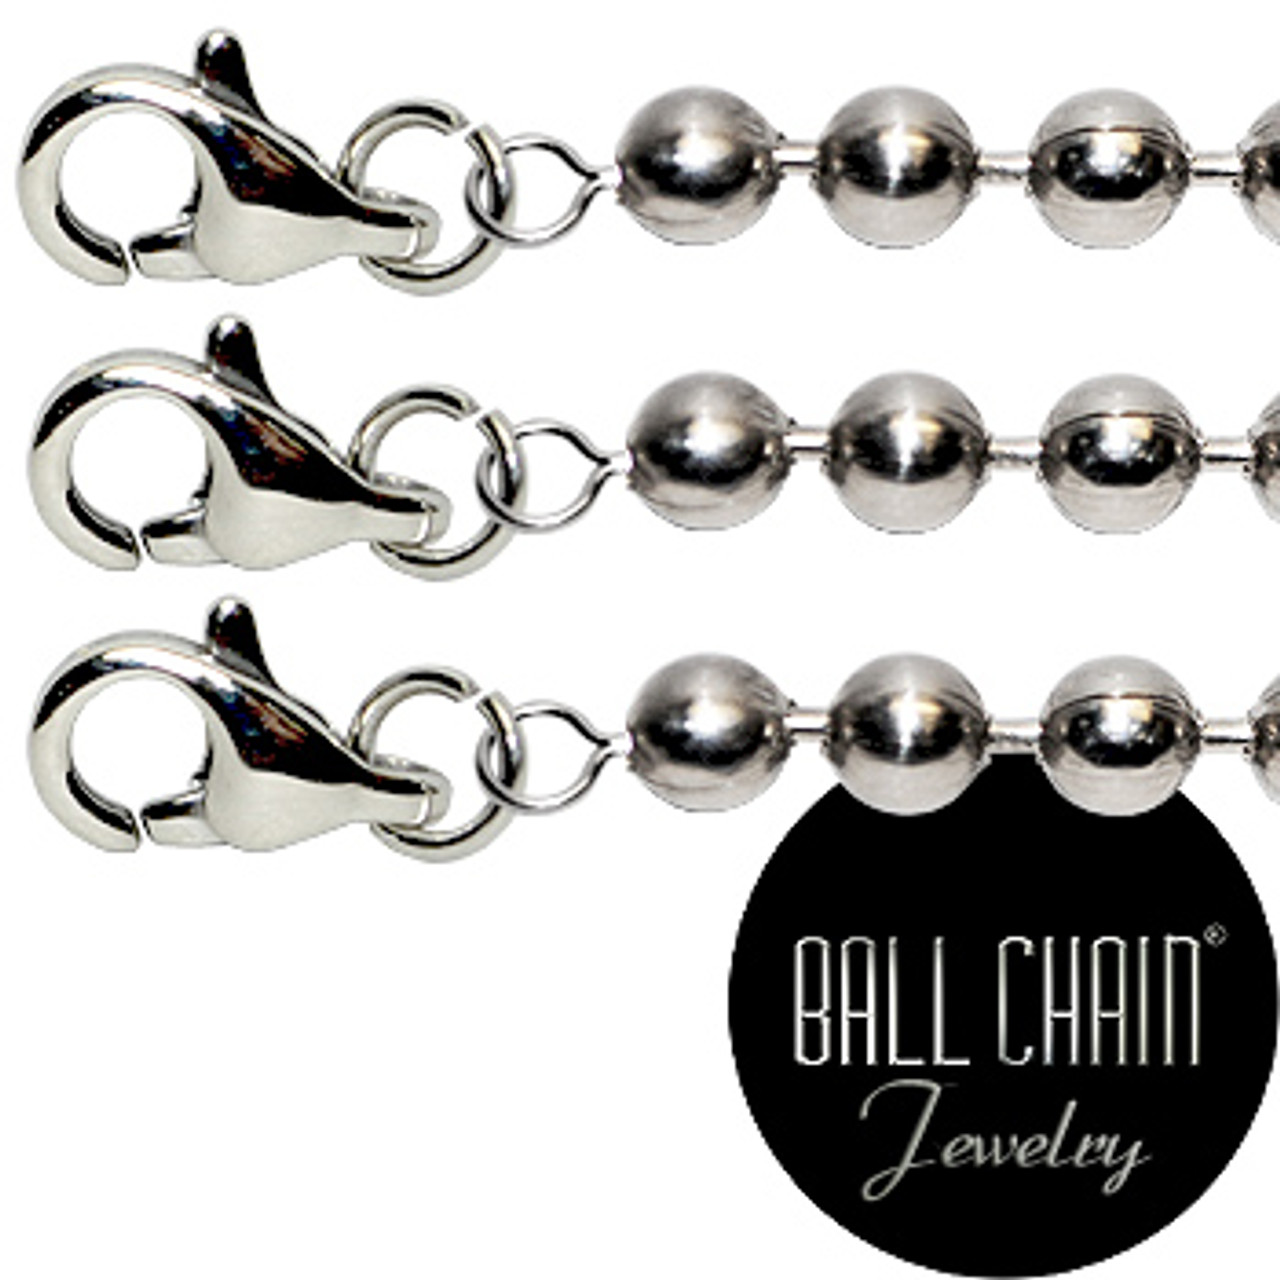 #6 Nickel Plated Brass Ball Chains with Lobster Claw - 16 Inch Length